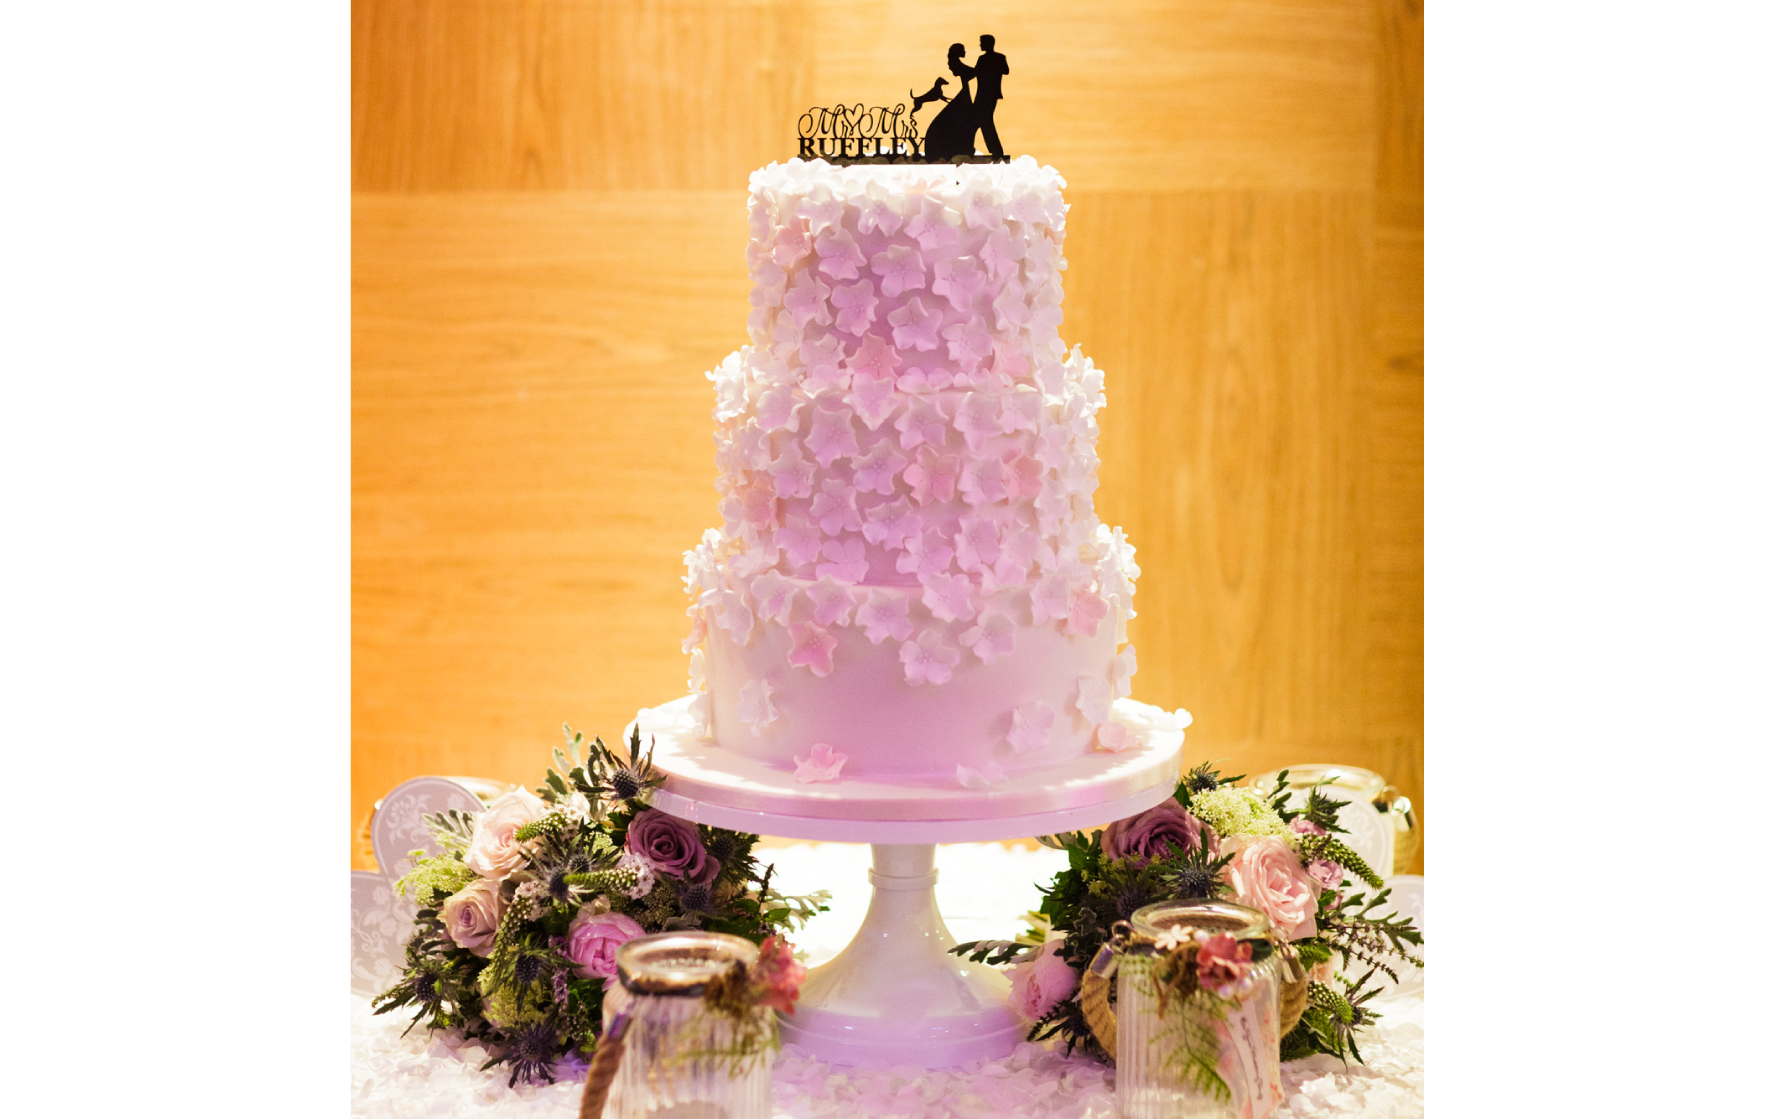 Jen and Steve's White Sugar Flower Wedding Cake - Pat a Cakes Jersey